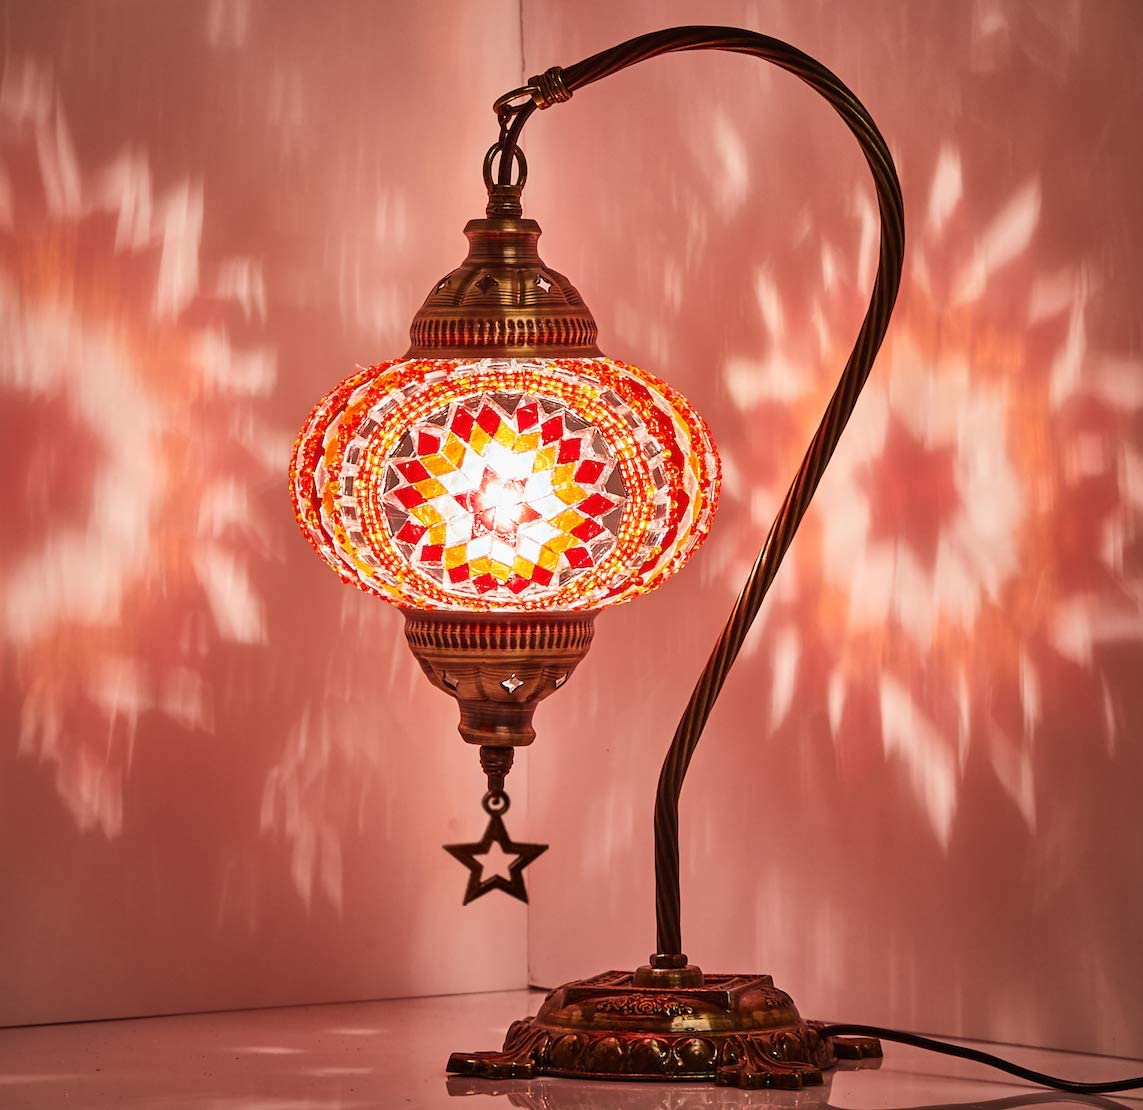 Demmex 2019 Turkish Moroccan Mosaic Table Bedside Night Tiffany Bedside Lamp